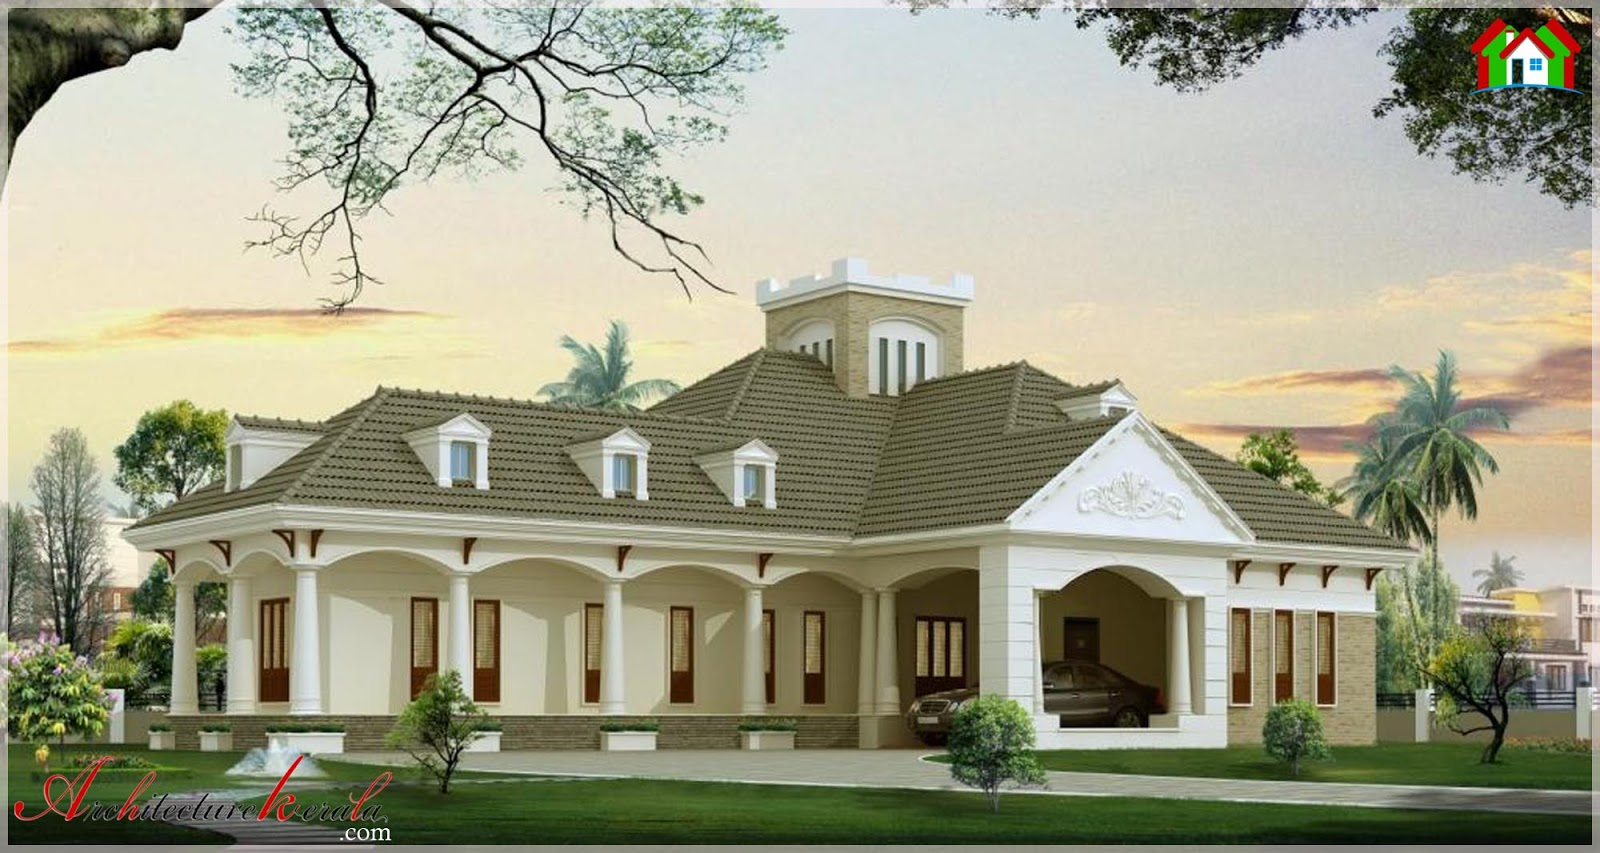 Traditional style kerala villa in 3000 square feet for 3000 sq ft house plans kerala style